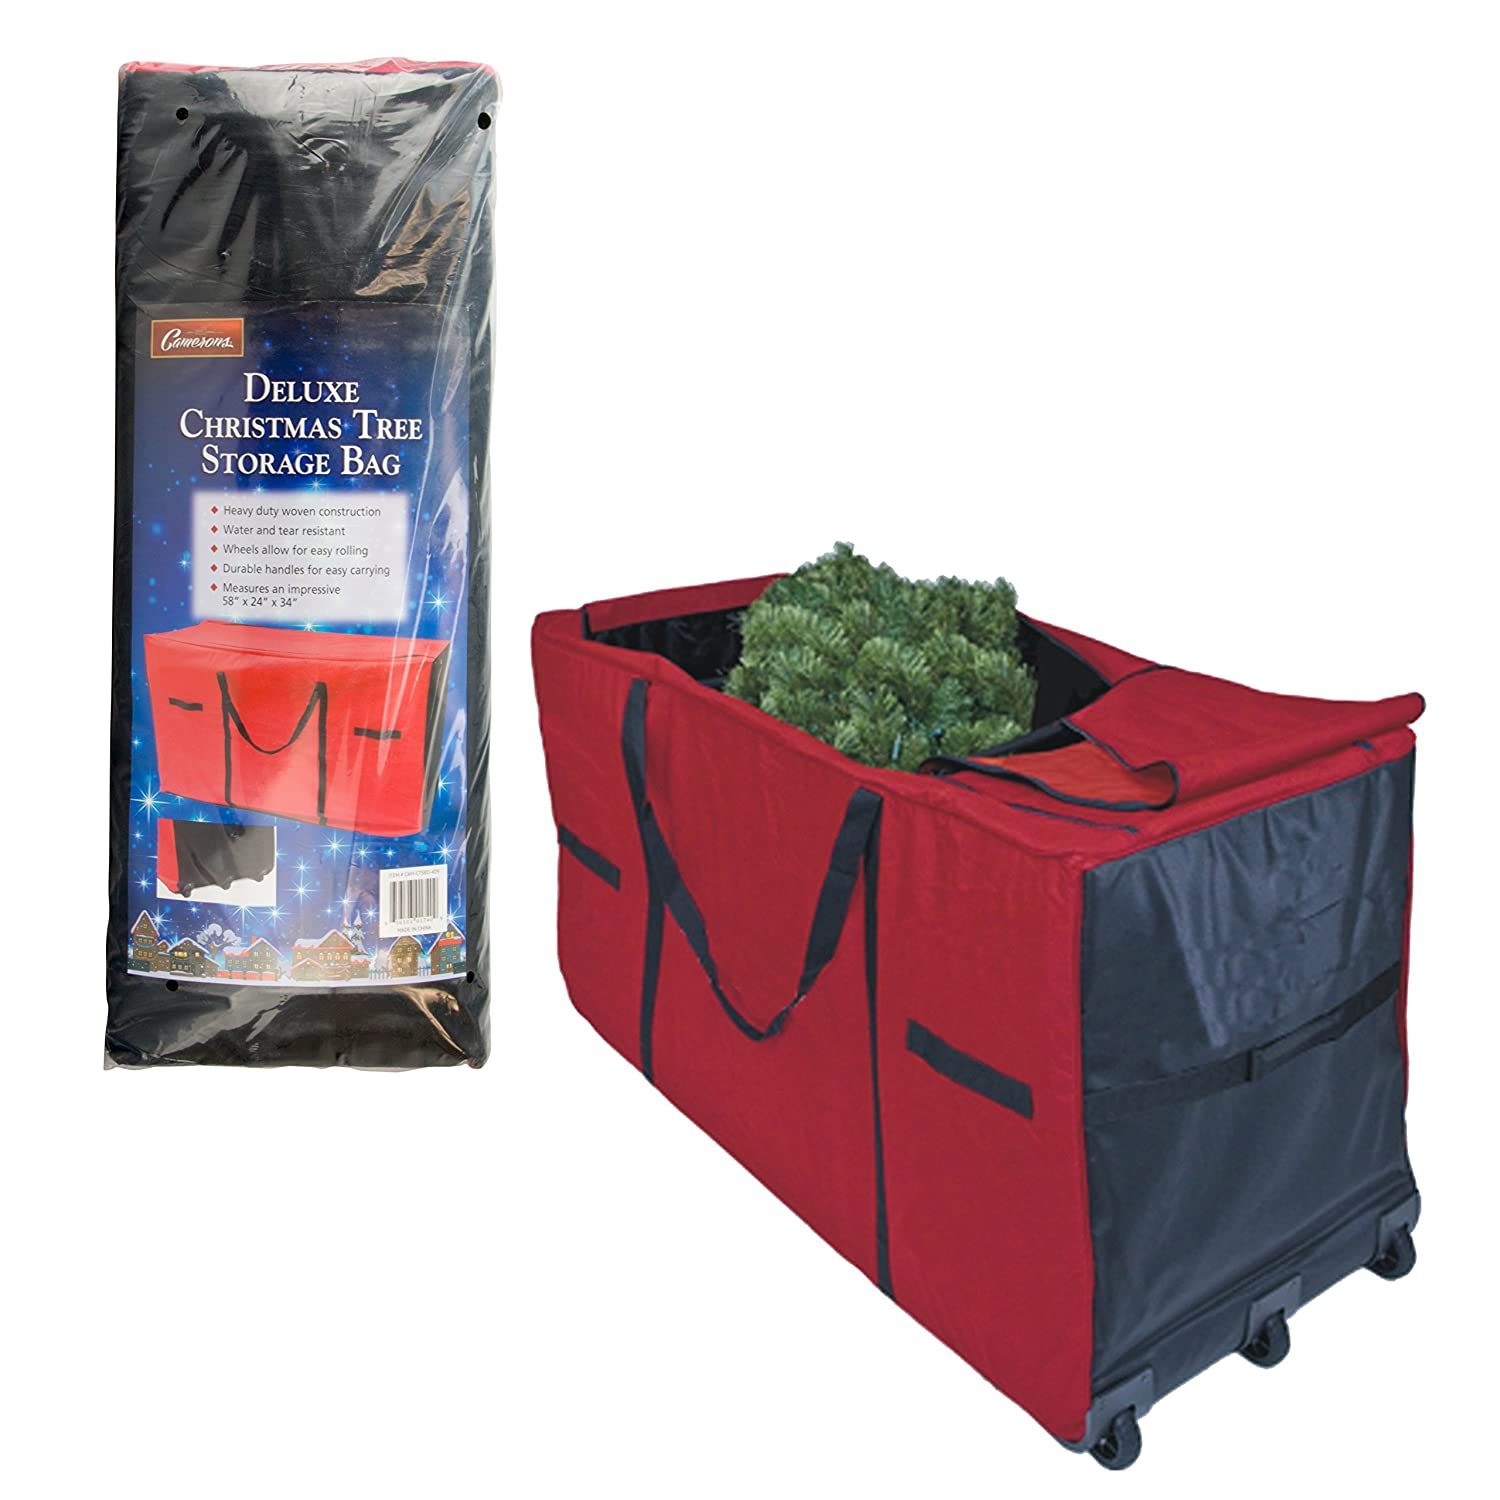 amazoncom christmas tree storage bag heavy duty 58x24x34 storage container with wheels home kitchen - Christmas Tree Bags Amazon